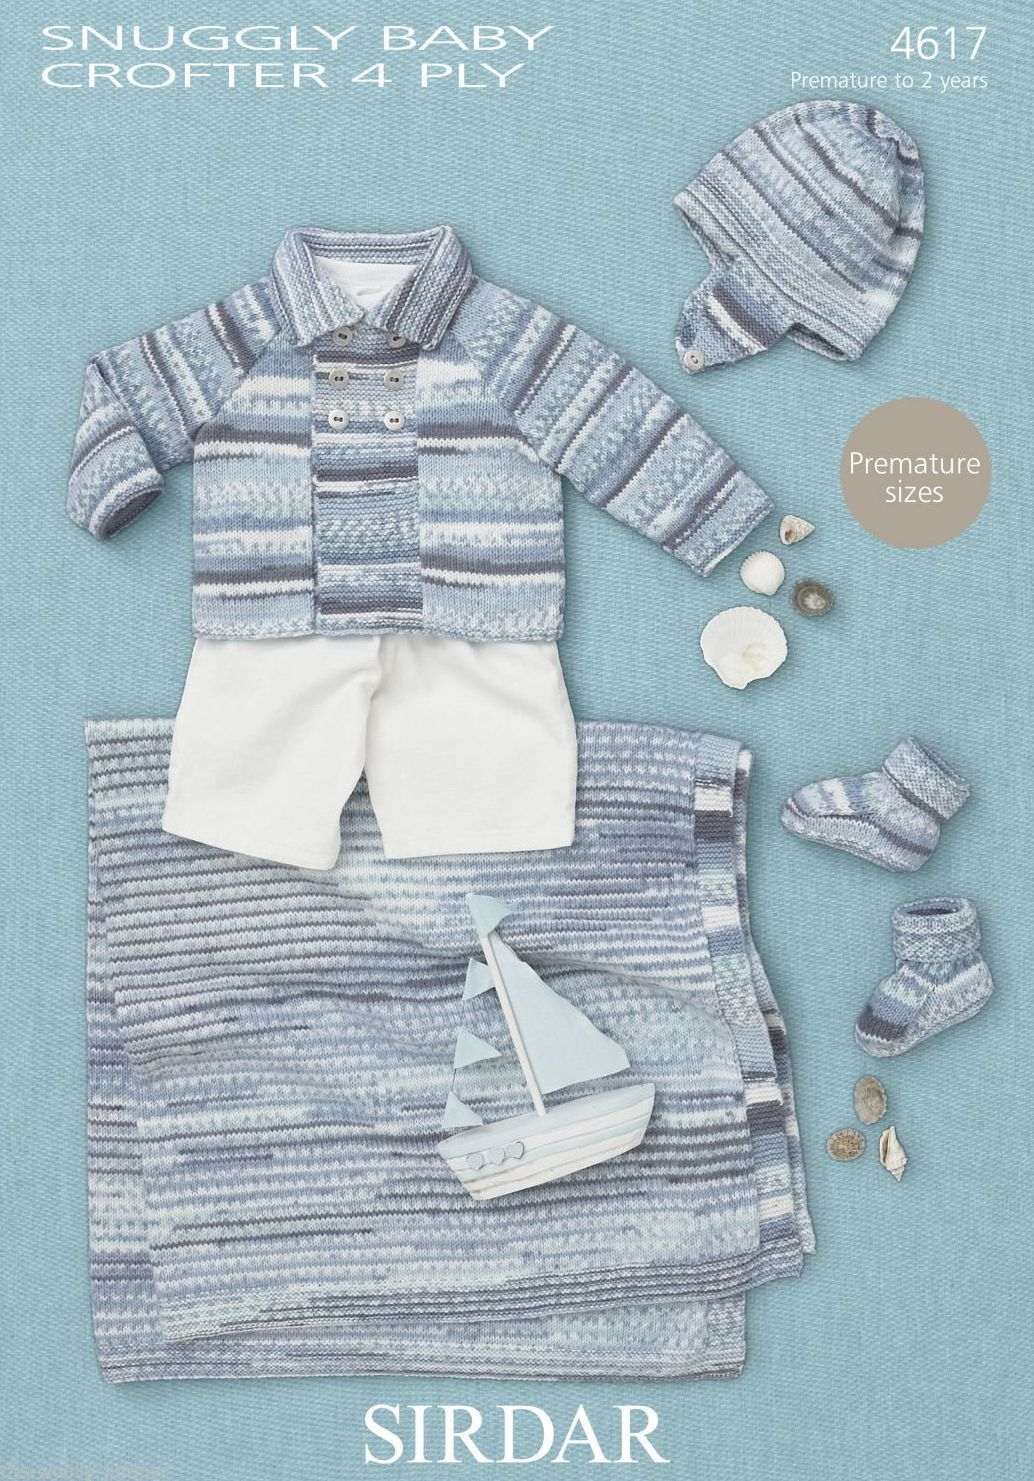 Sirdar 4 Ply Baby Knitting Patterns : 4617 - SIRDAR SNUGGLY BABY CROFTER 4 PLY COAT HAT BOOTEES BLANKET KNITTING PA...